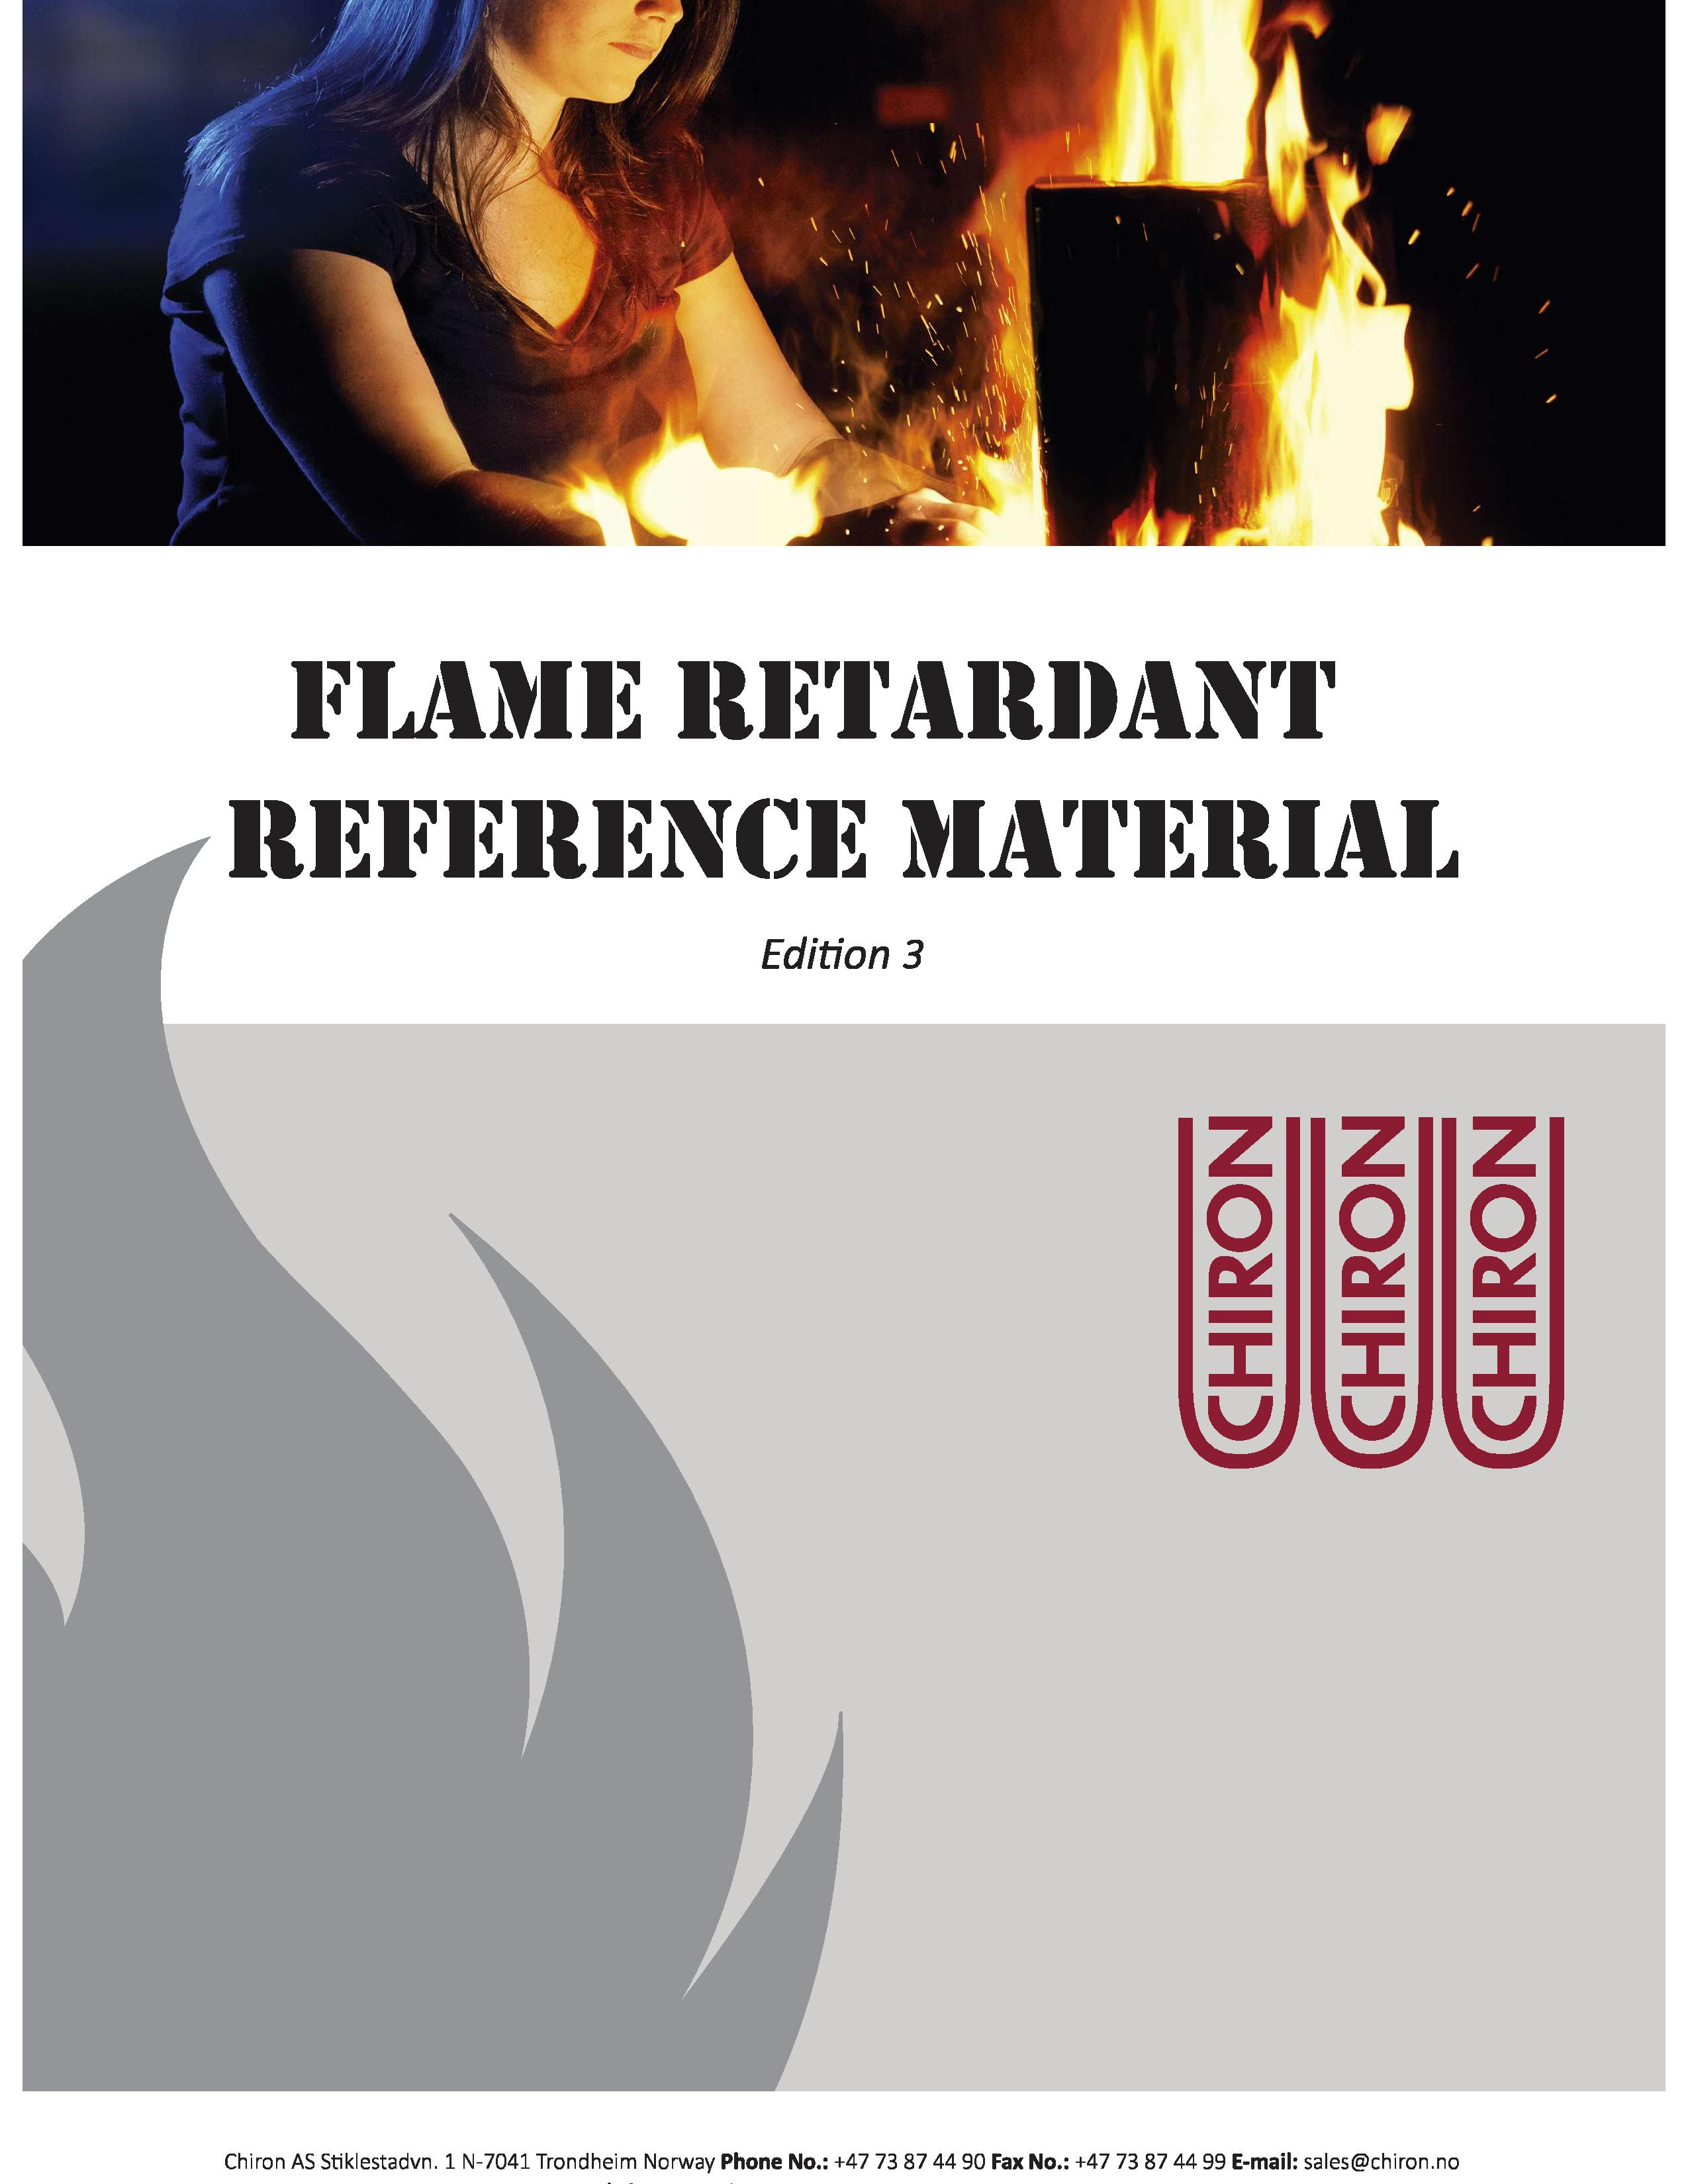 Flame Retardants Edition 3